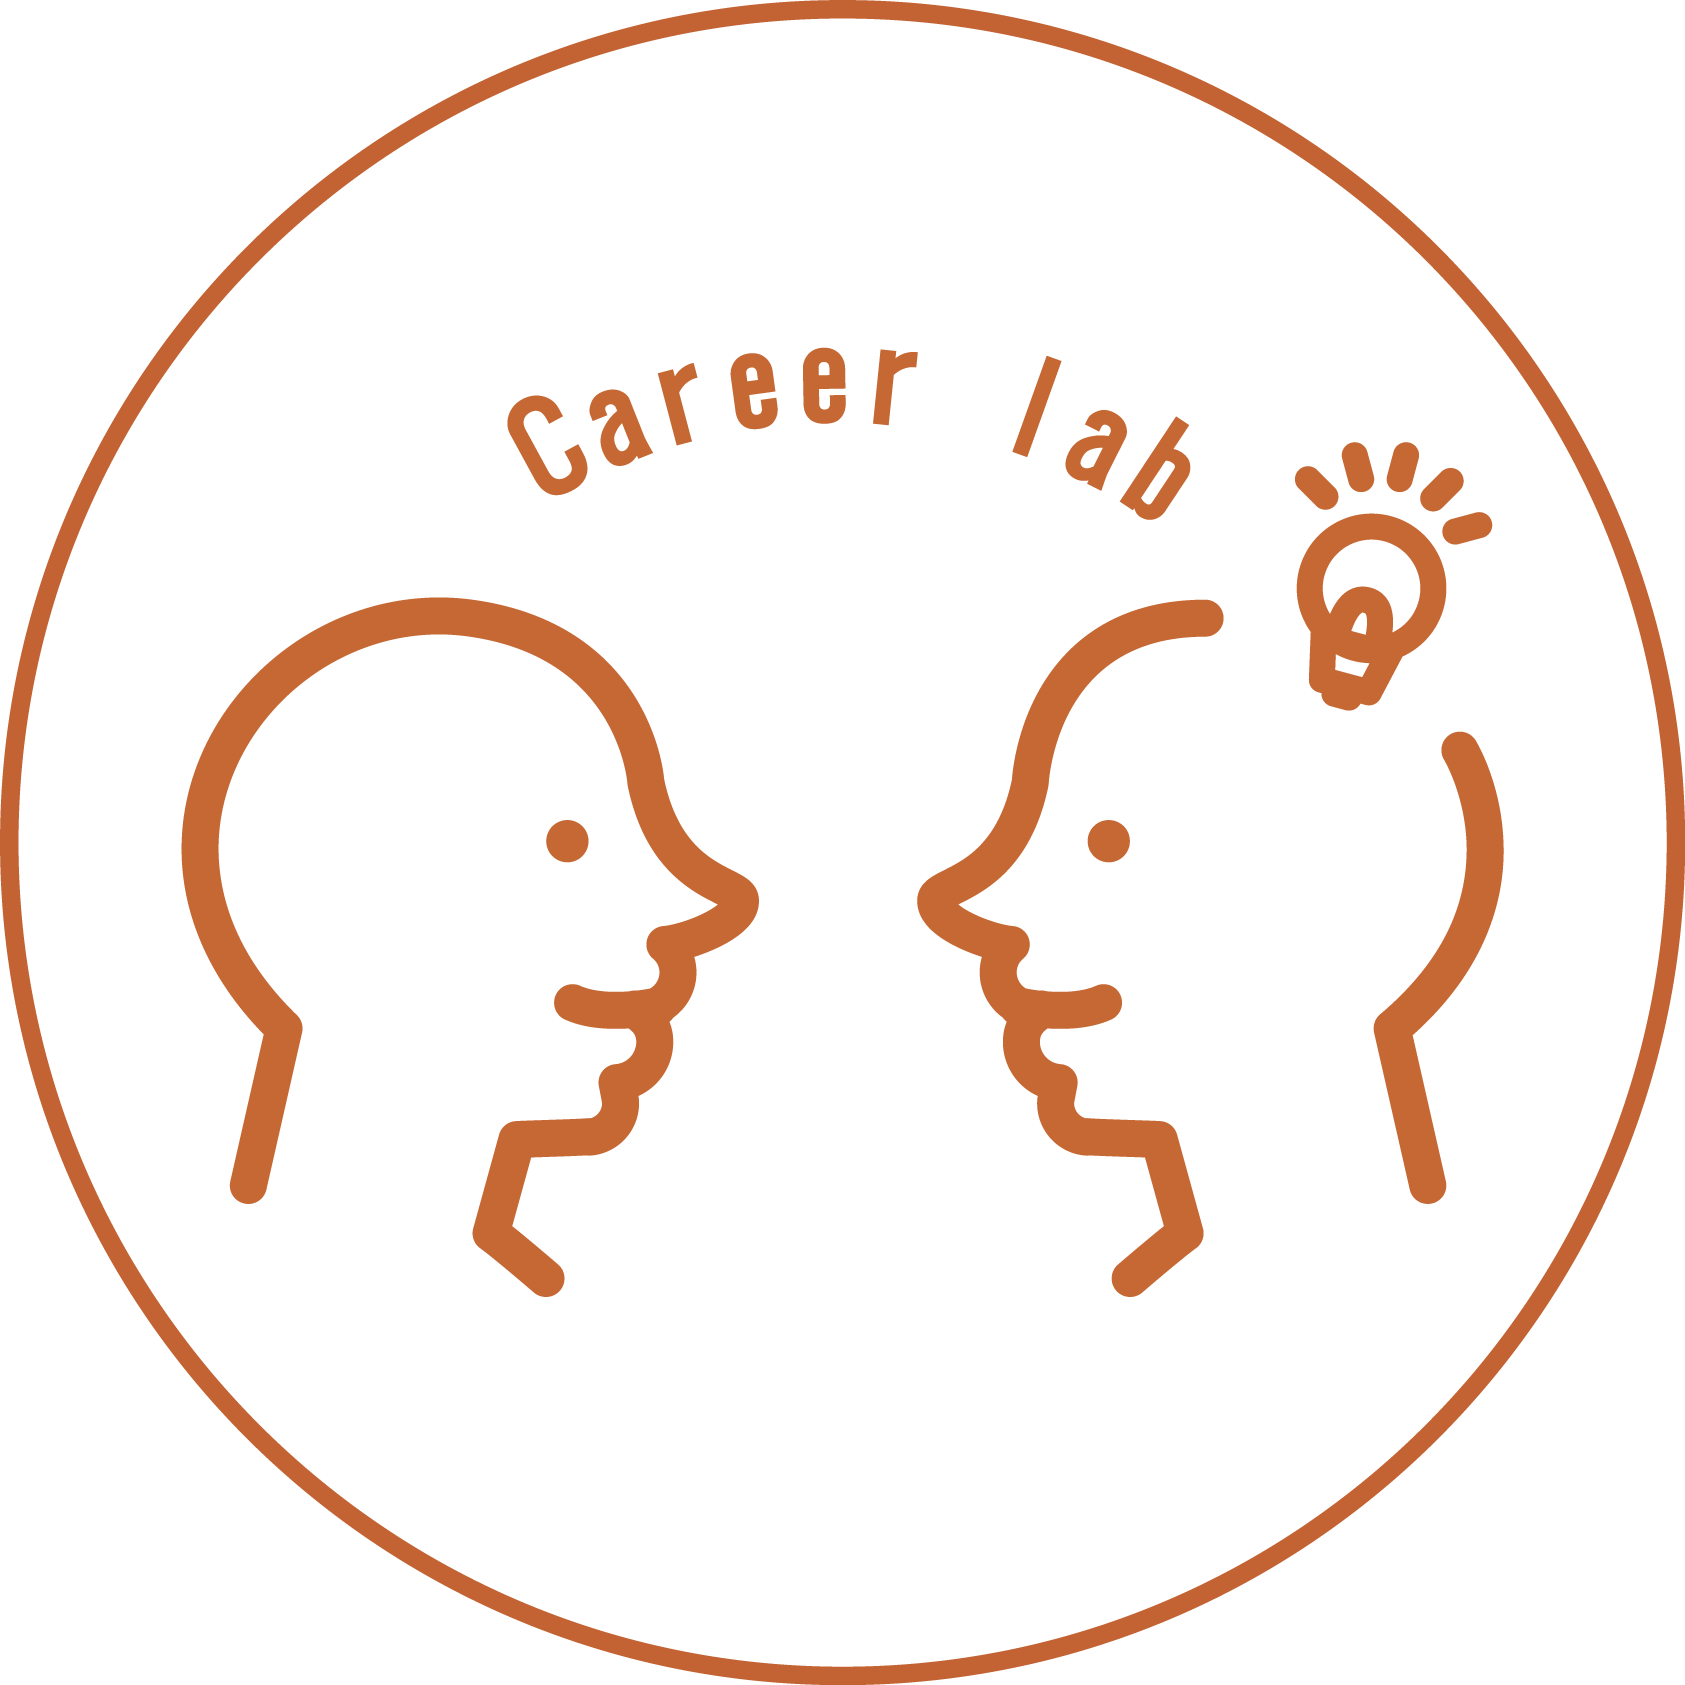 career_round_logo